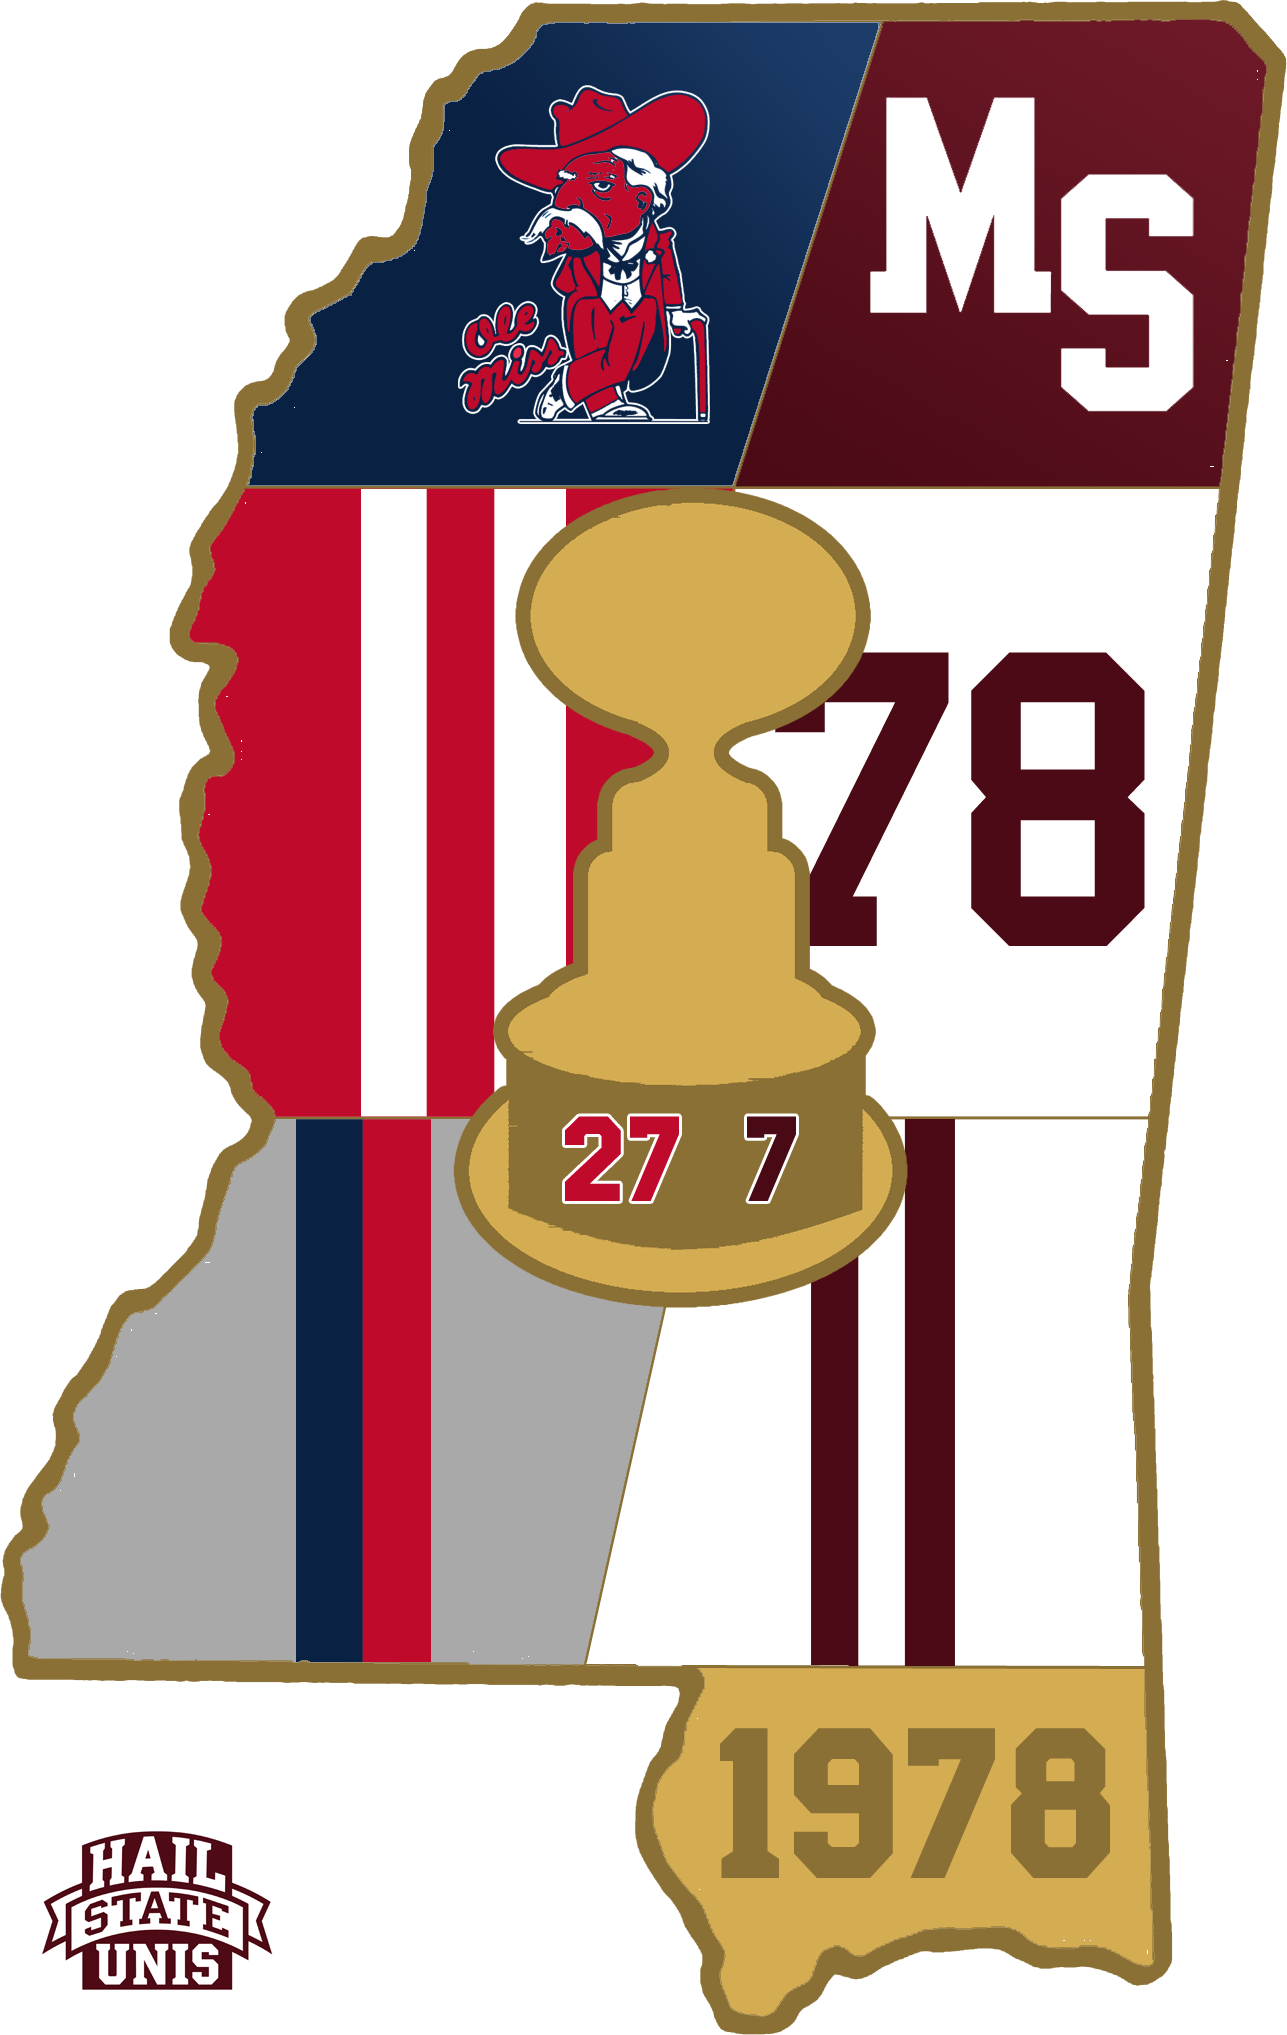 Ole miss football helmet clipart picture Egg Bowl Uniform History - Hail State Unis picture